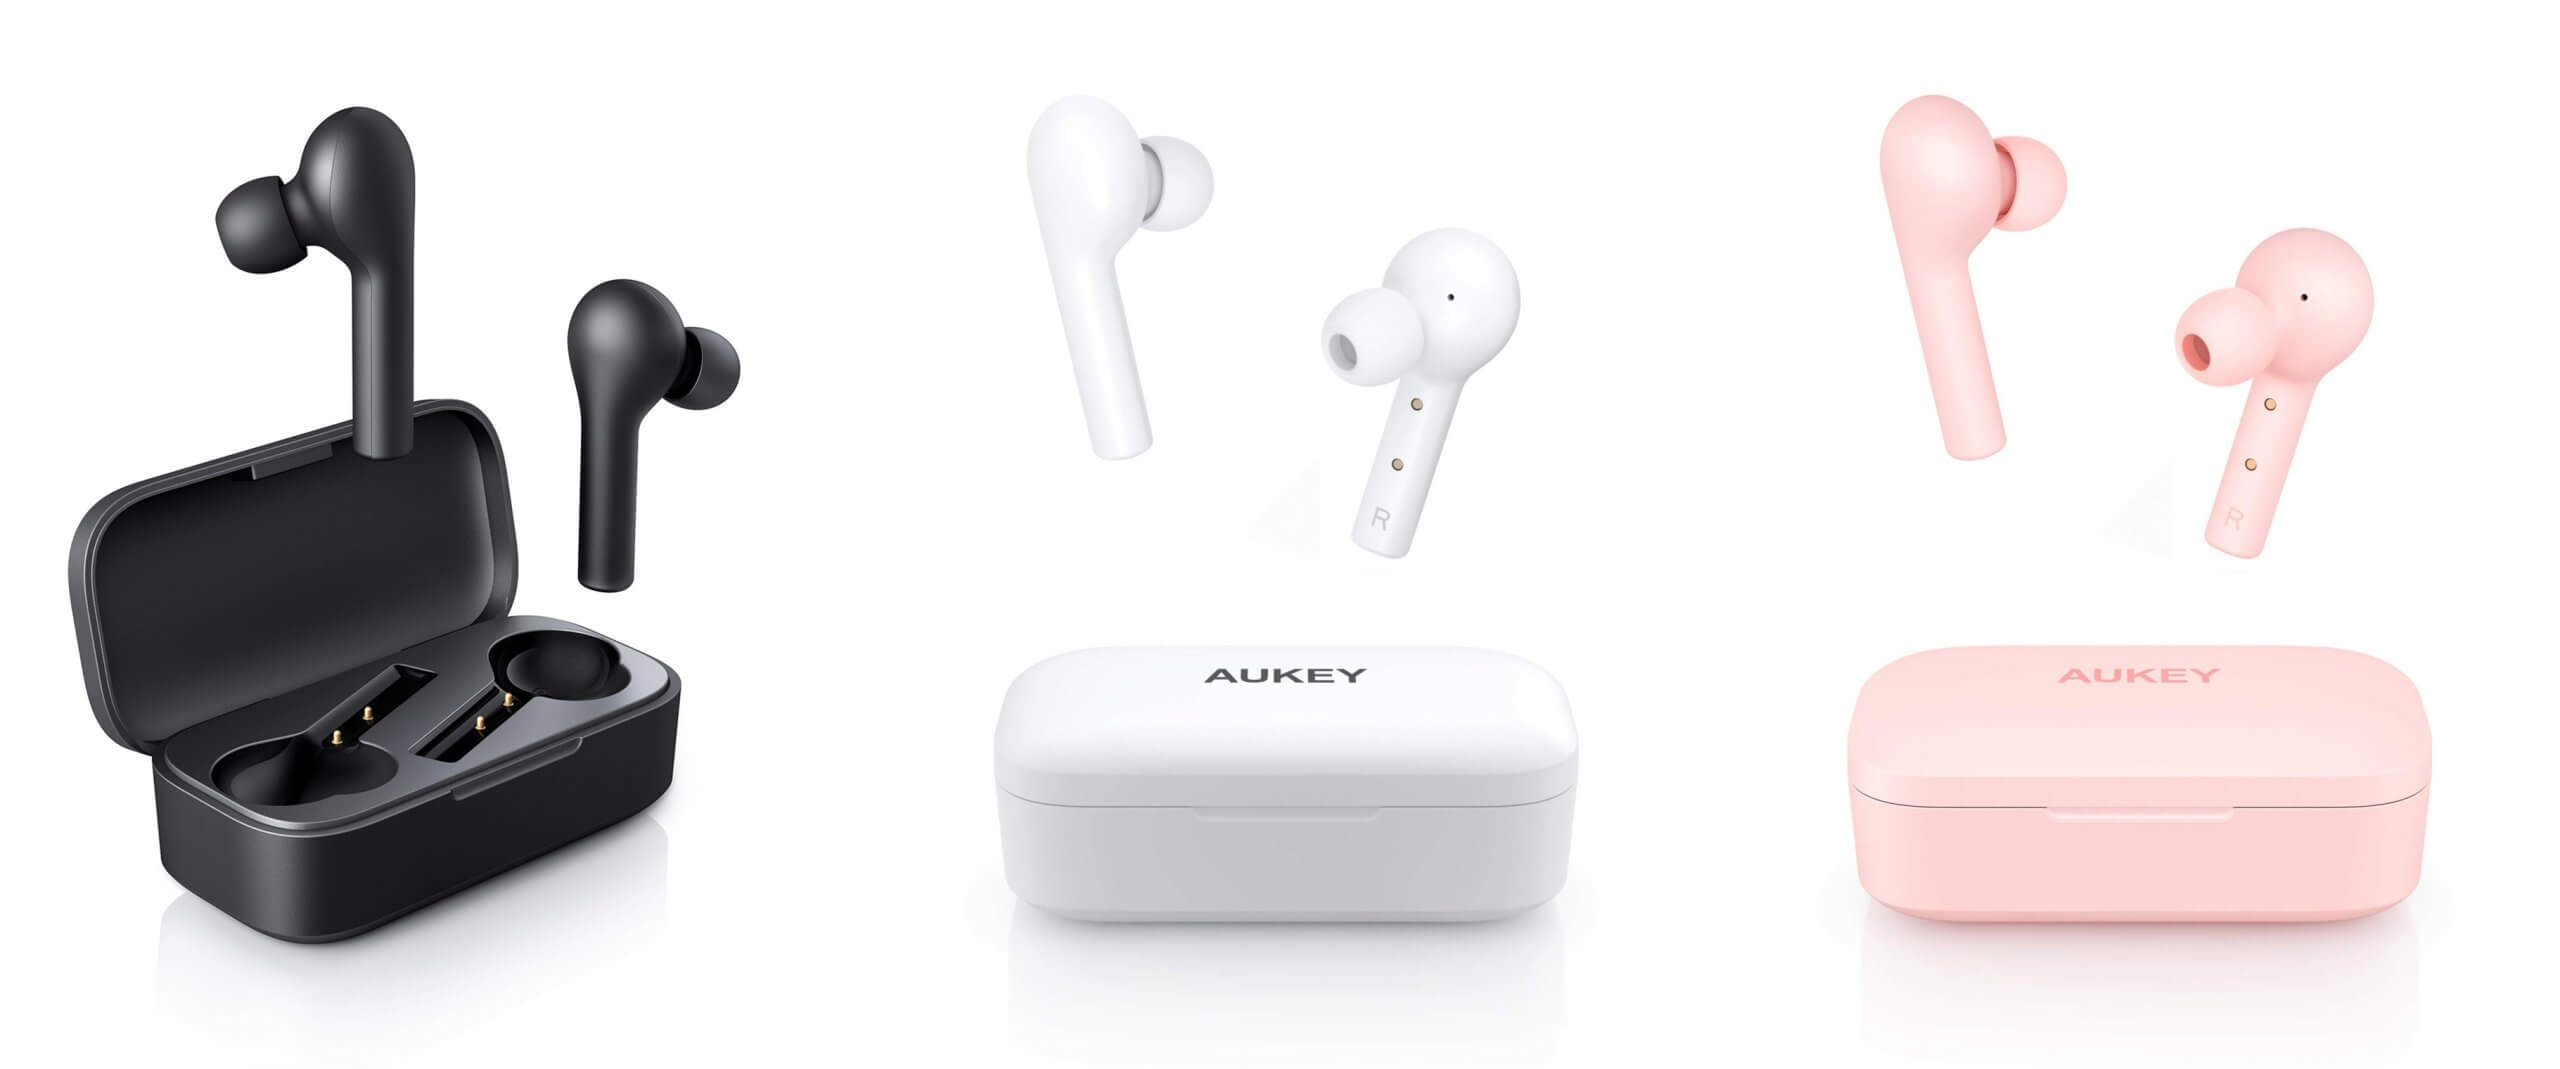 「AUKEY EP-T21」半額セール